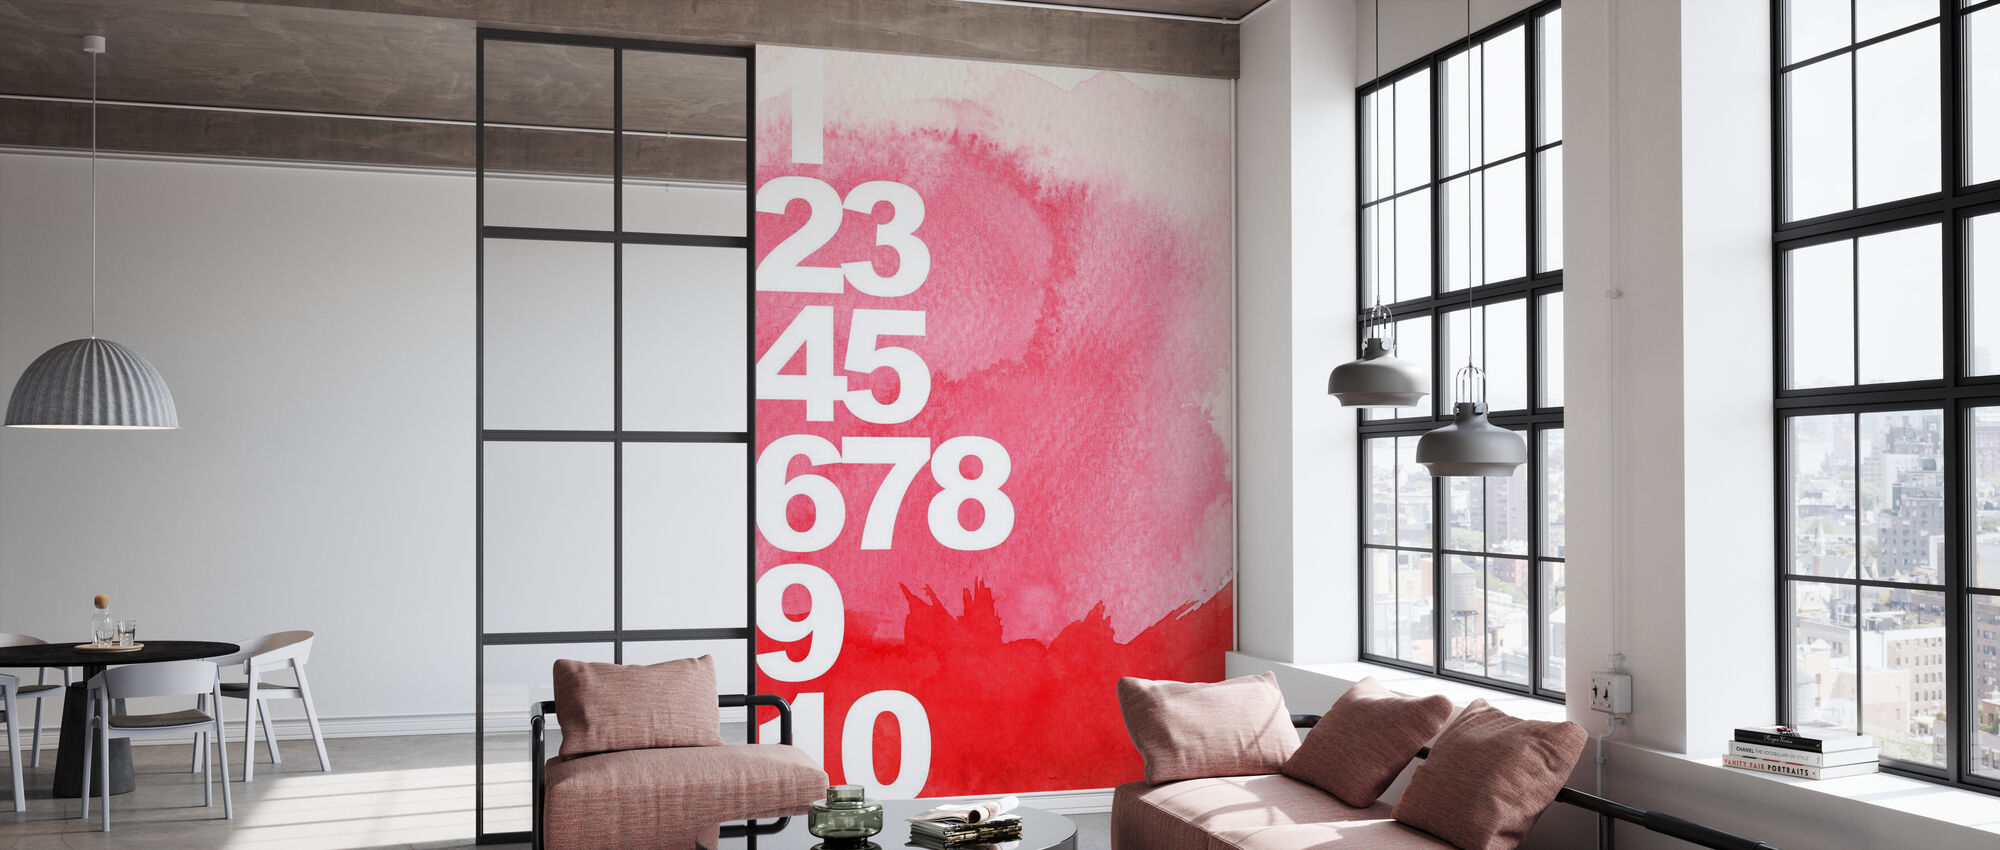 Numbers Background - Wallpaper - Office